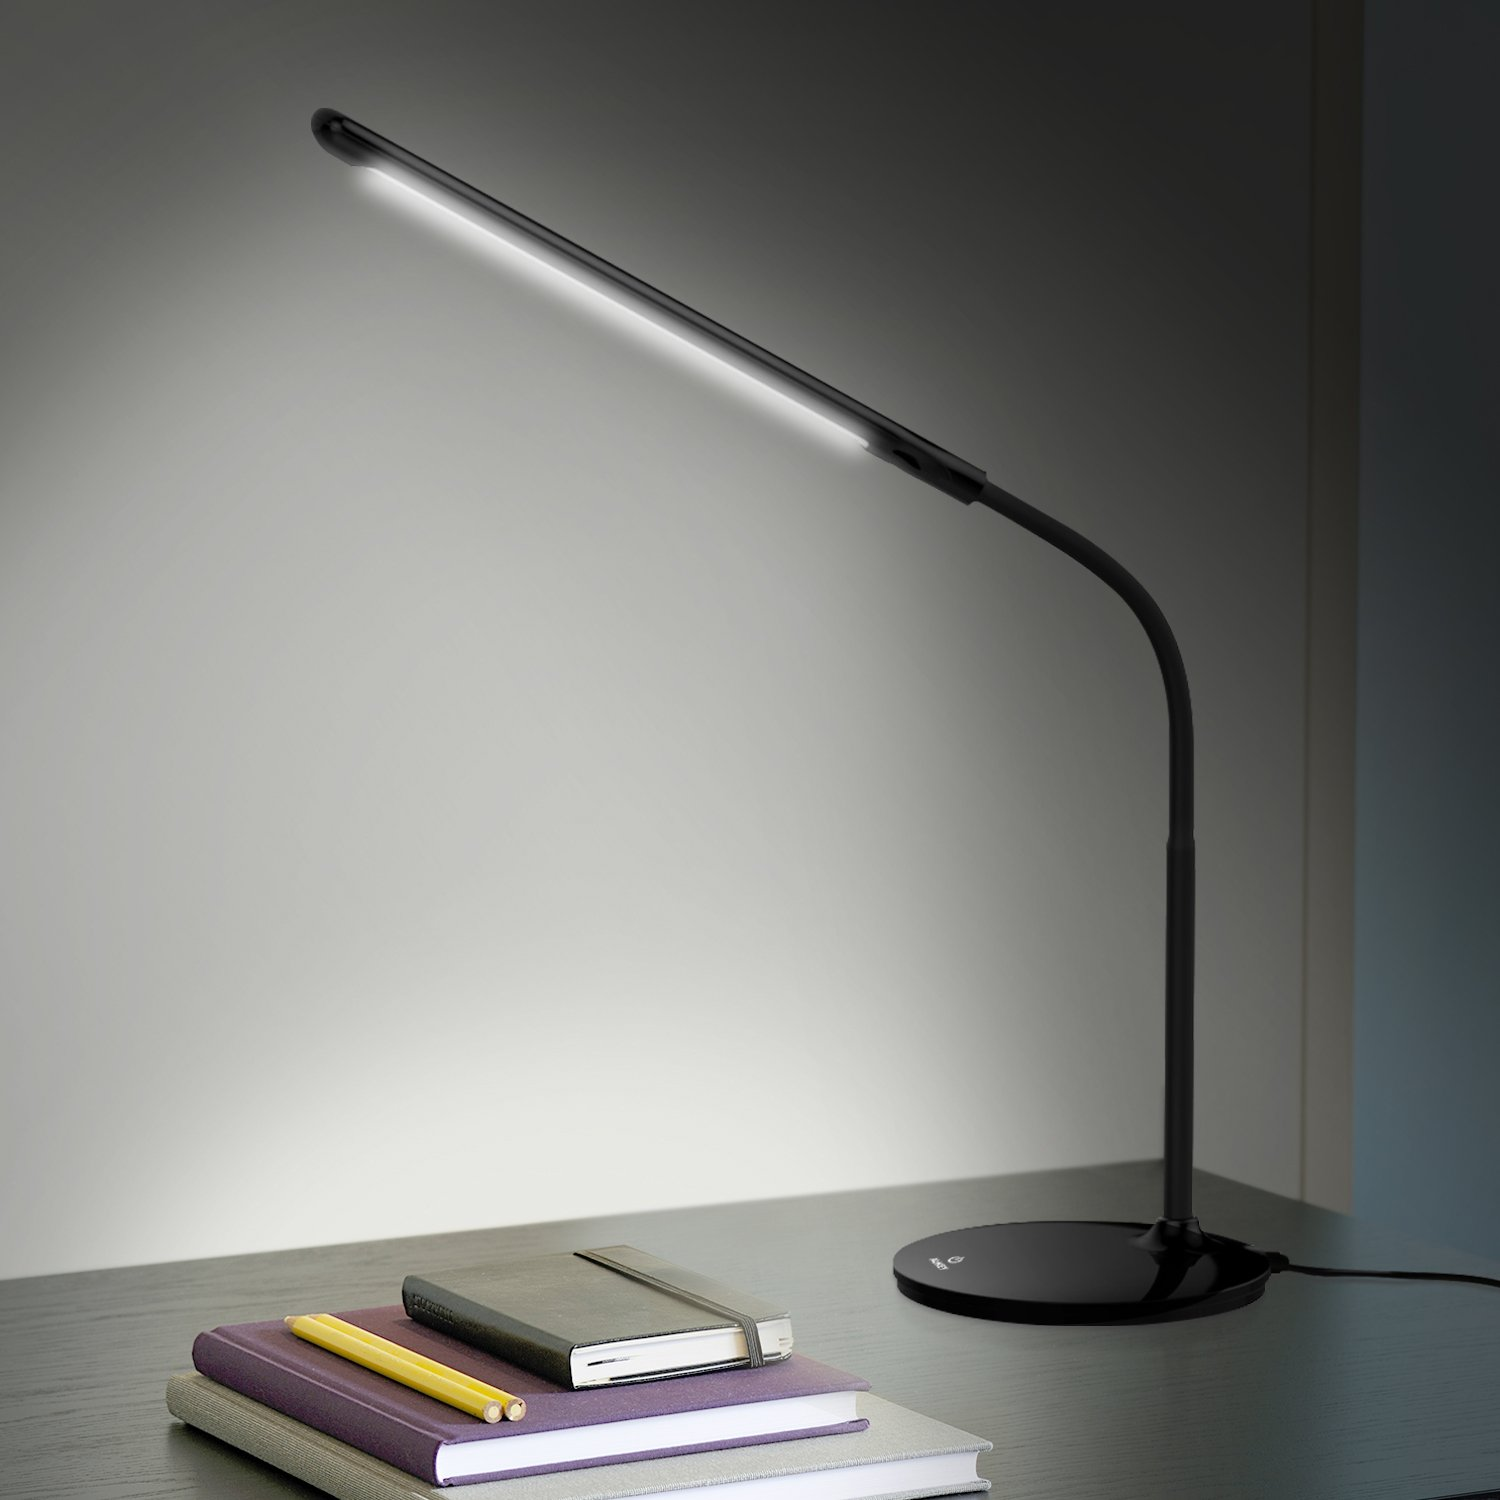 AUKEY Desk Lamp with 3 Modes Dimmer Levels, Touch-Sensitive Control Panel LED Table Lamp (LT-ST1)